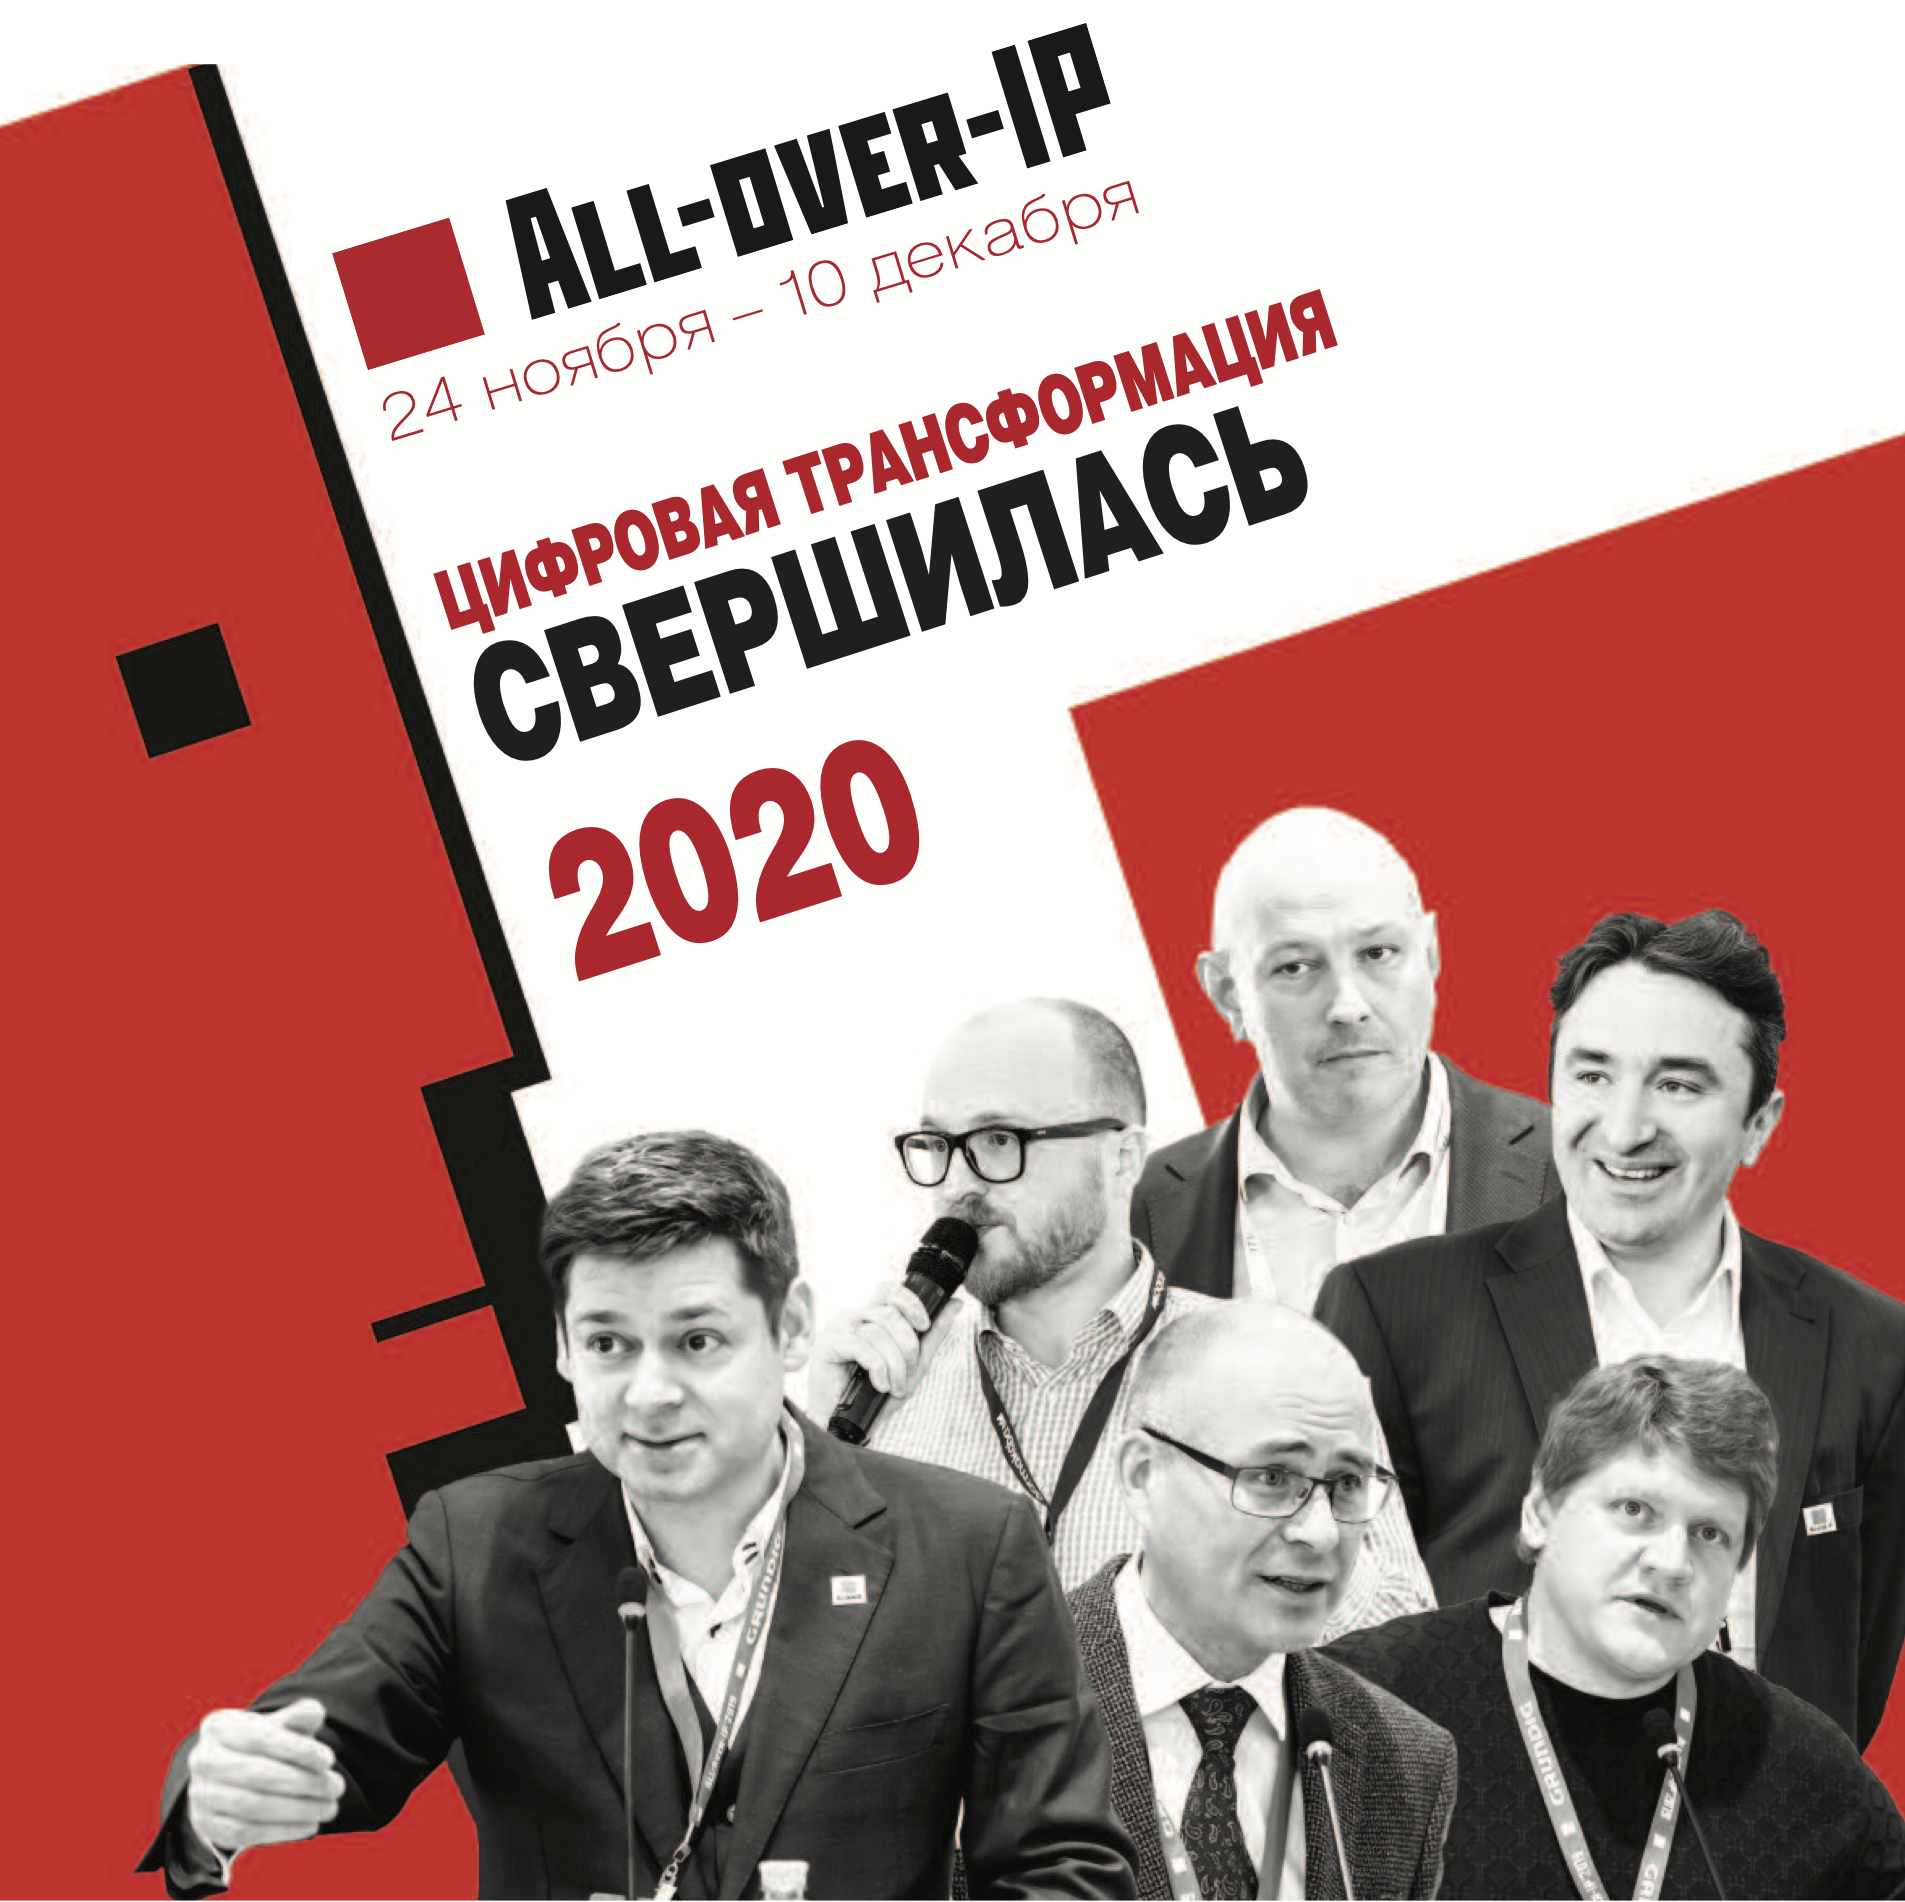 All-over-IP 2020 Online